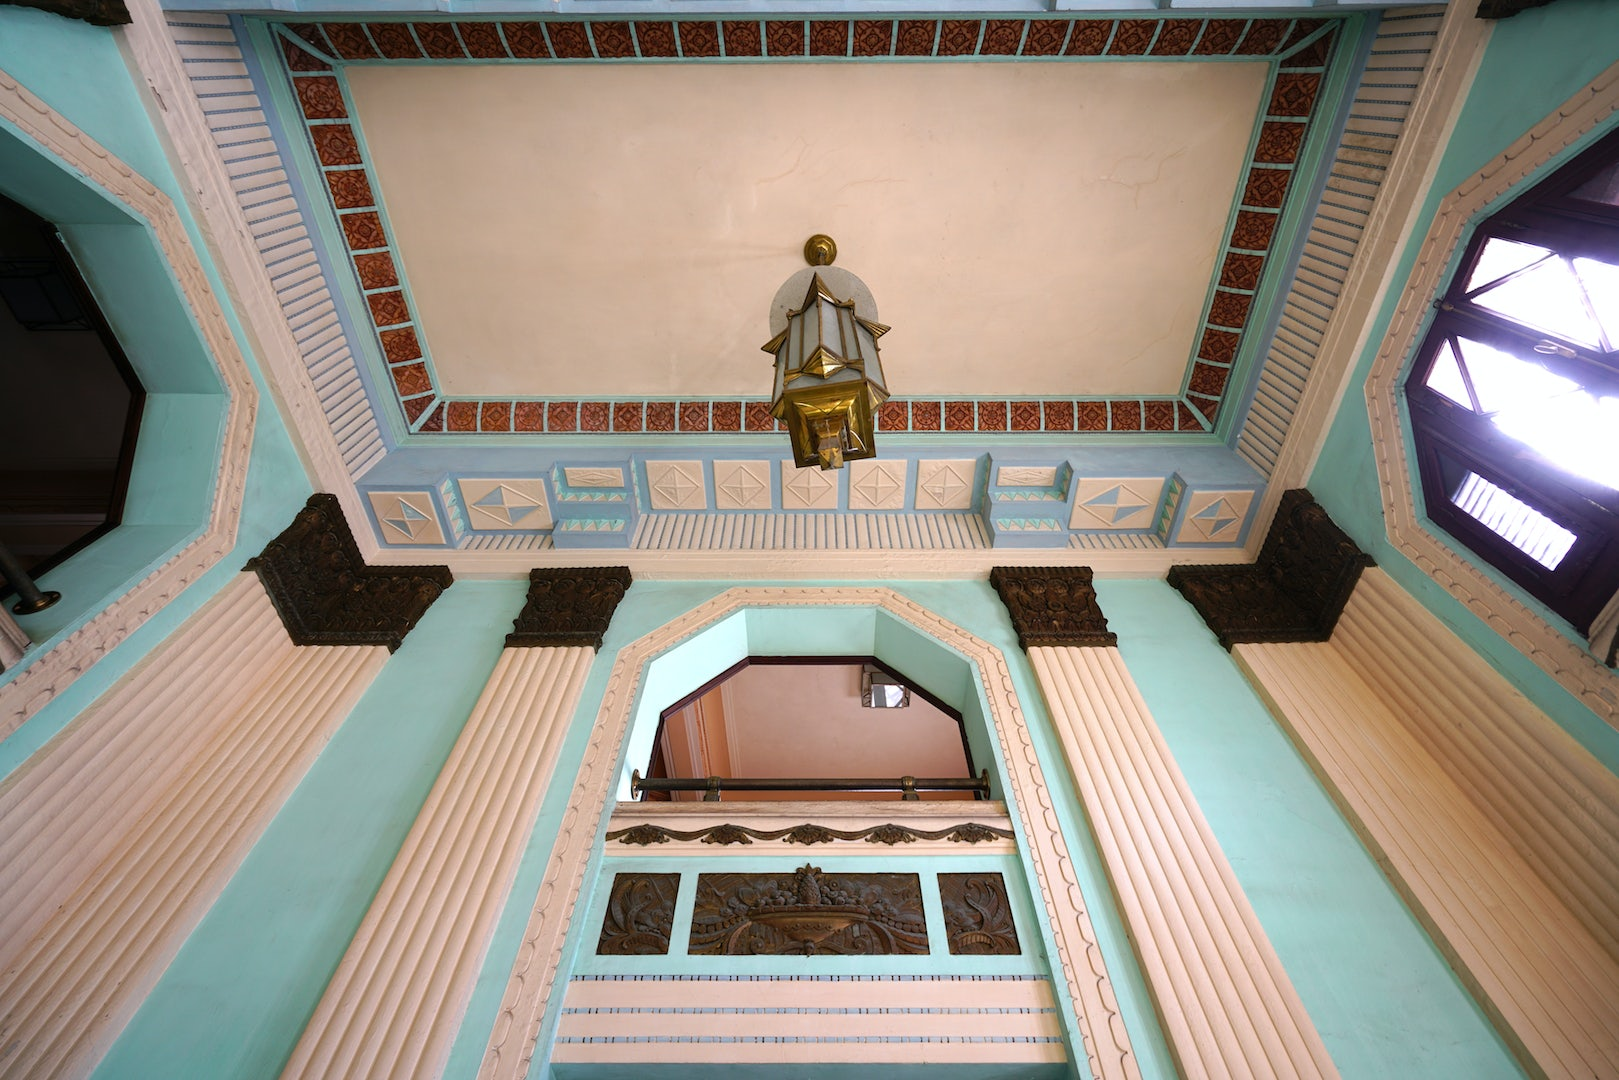 art deco interior of Edificio Bacardi